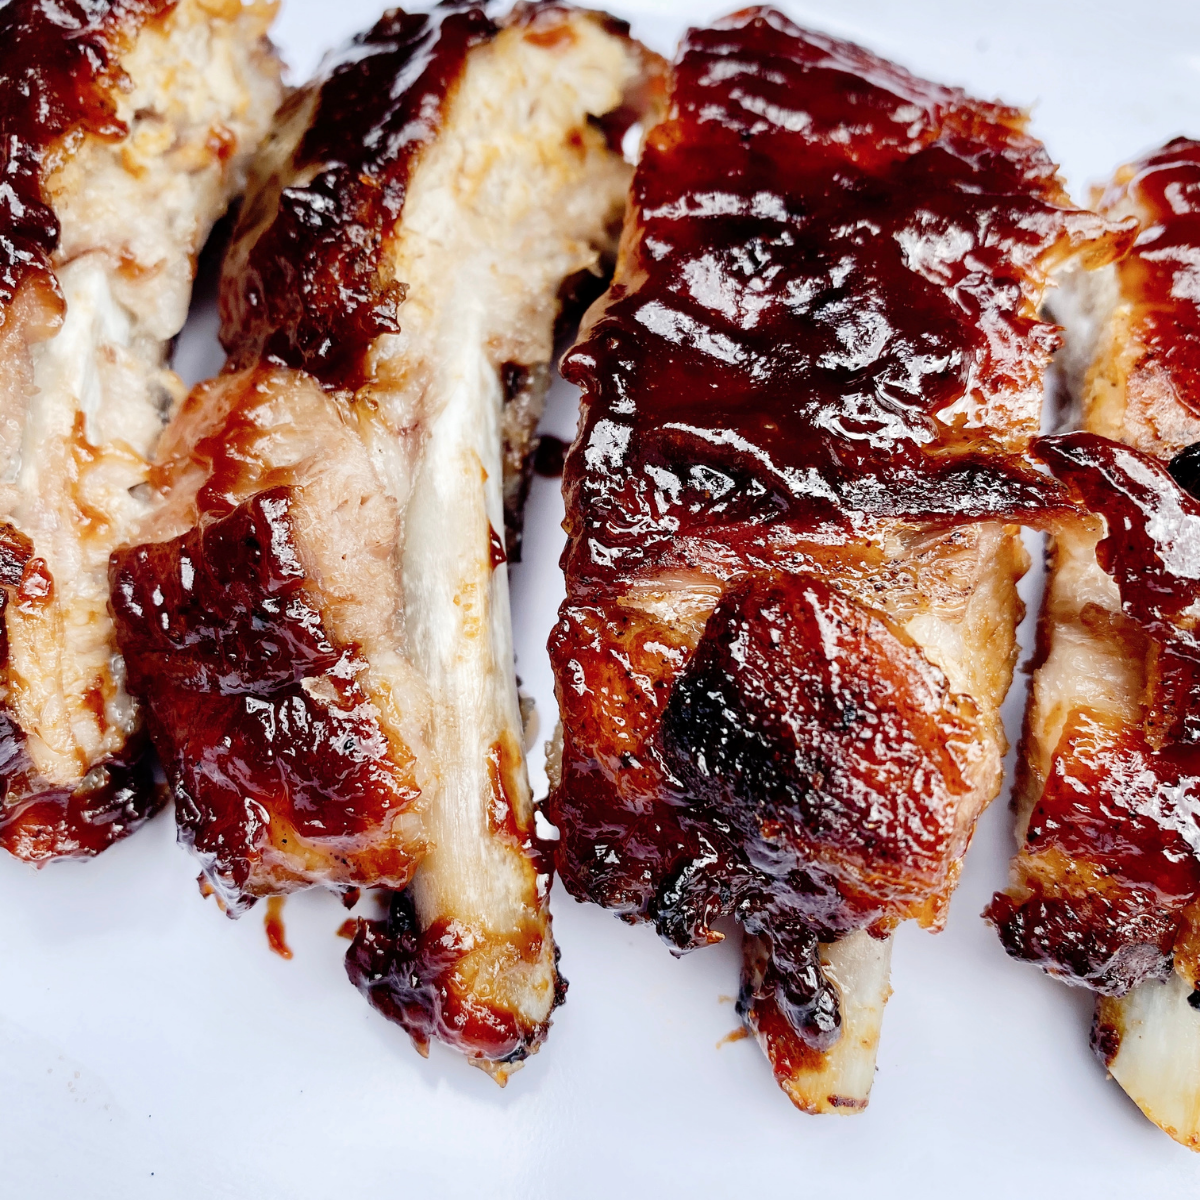 Easy Fall-Off-The-Bone, Oven-Baked Ribs | The Night Time Cook